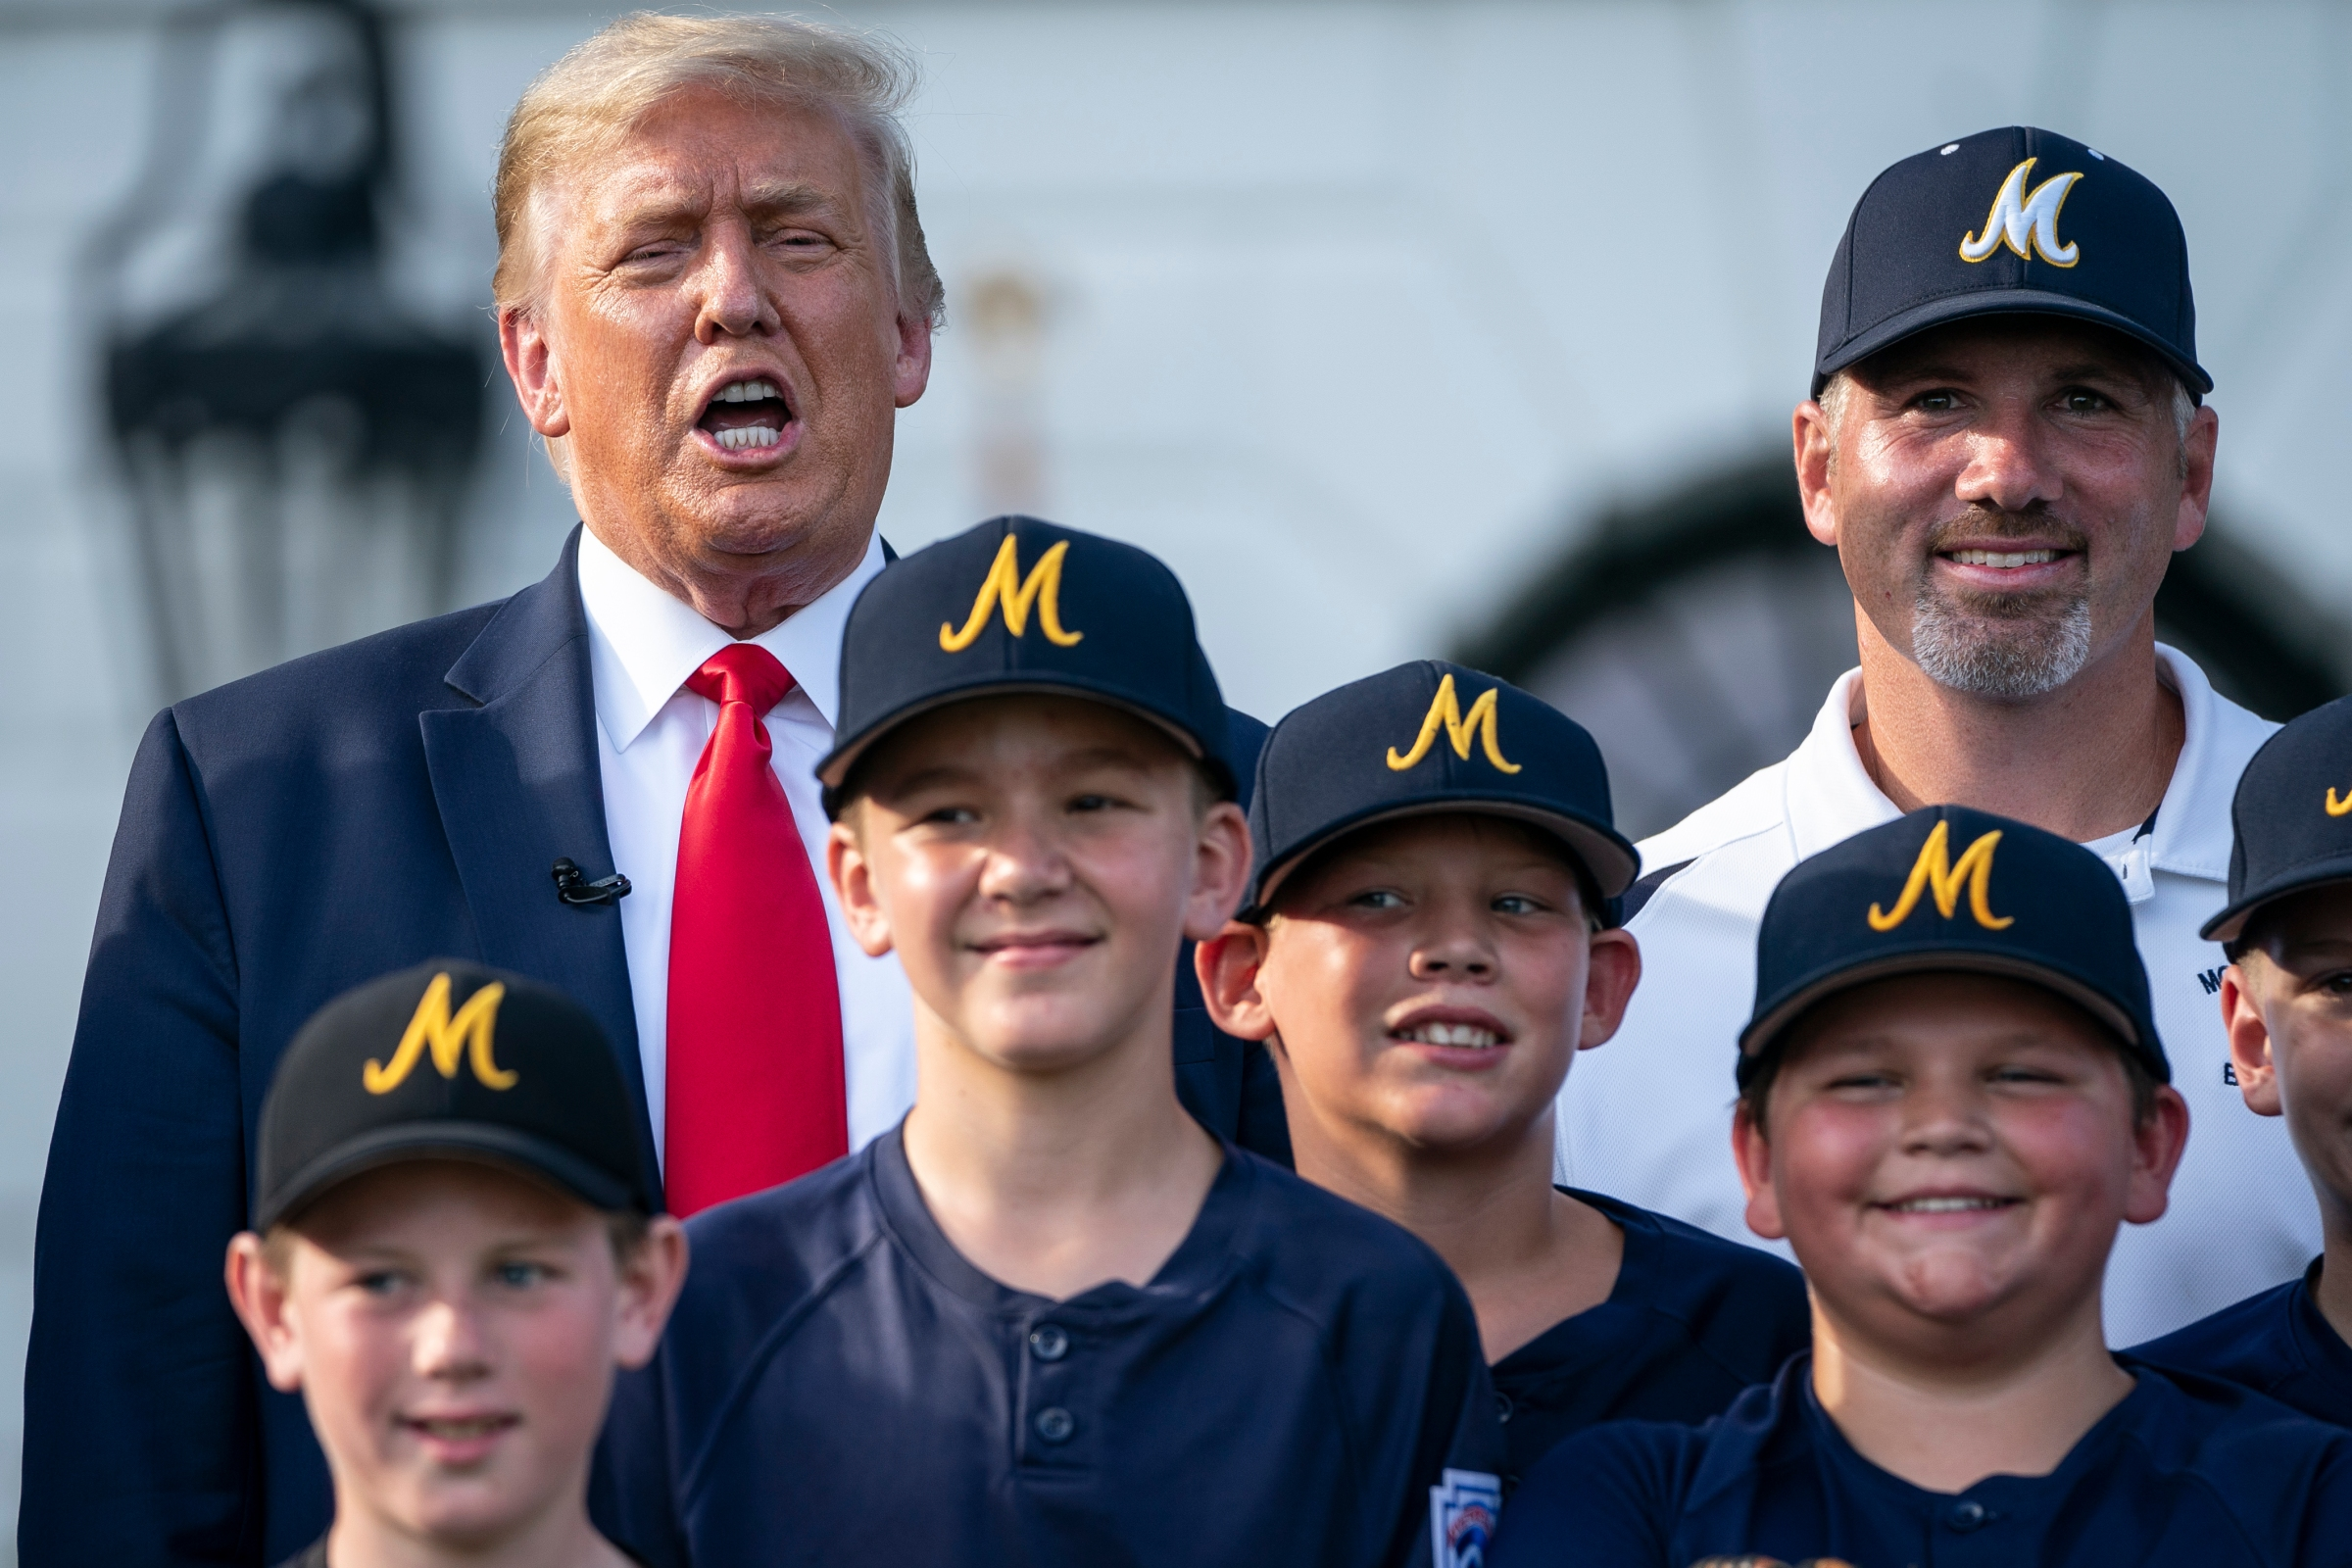 Donald Trump yelling something while posing for a photo with some Little League kids, in 2020.